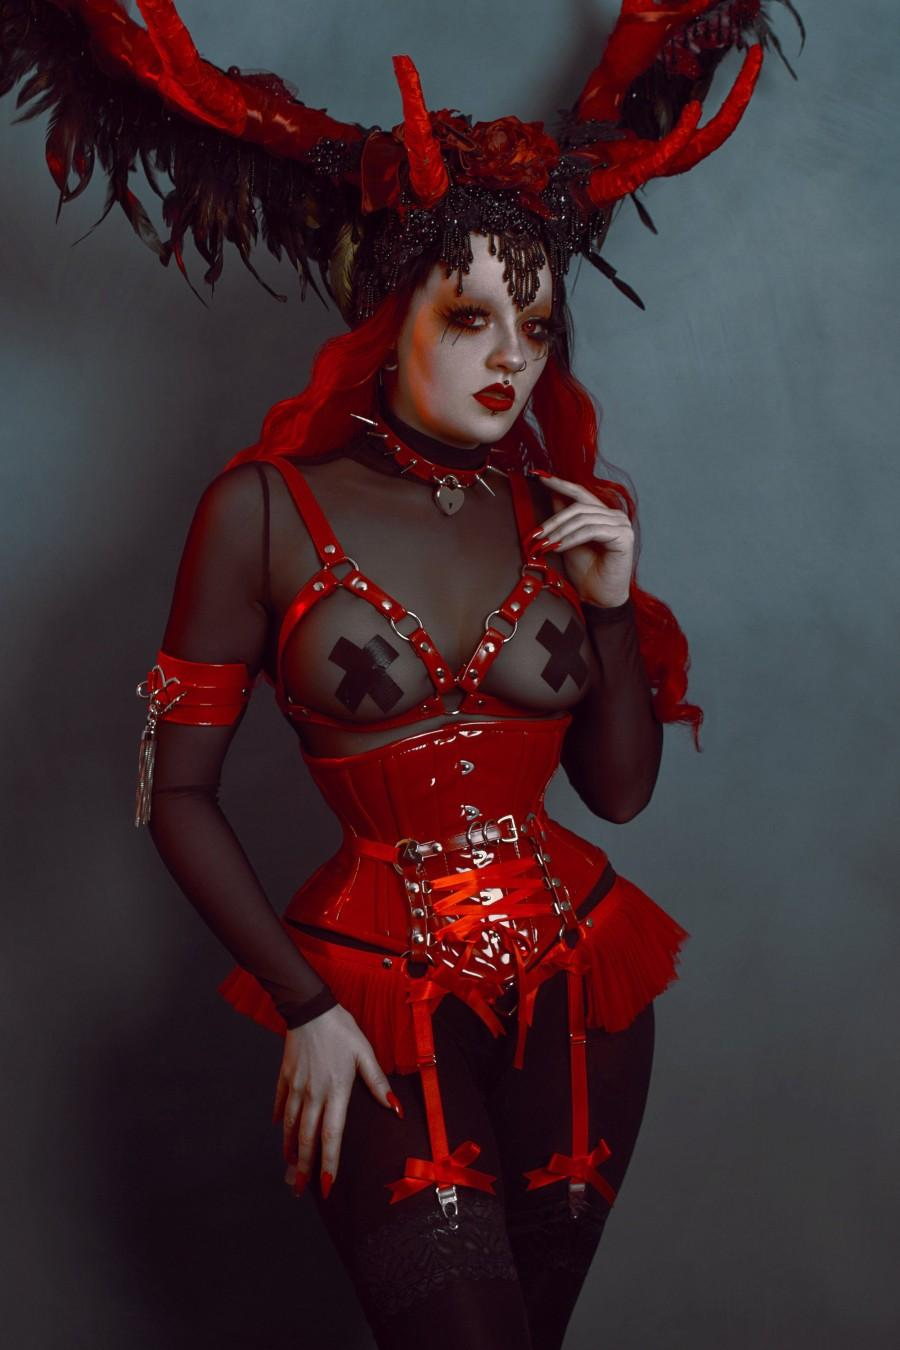 Wedding - Red Faux Leather Cage Harness Bra, Red O Ring Harness, Red Vegan Leather Harness Bra, Red BDSM Harness Bra, Red Burlesque Harness Bra